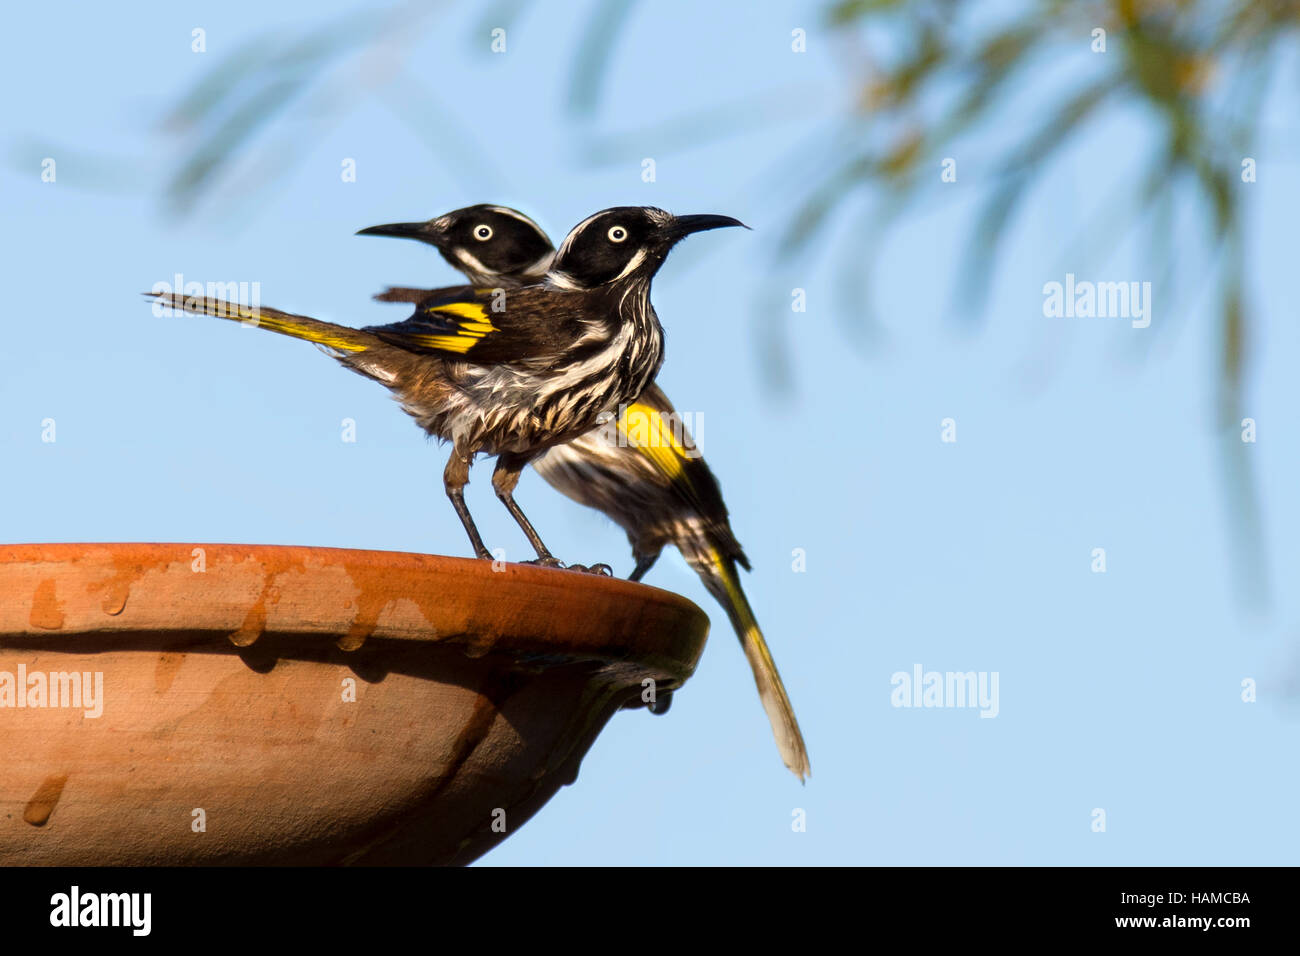 Closeup of New Holland Honeyeater bird (Phylidonyris novaehollandiae) Stock Photo